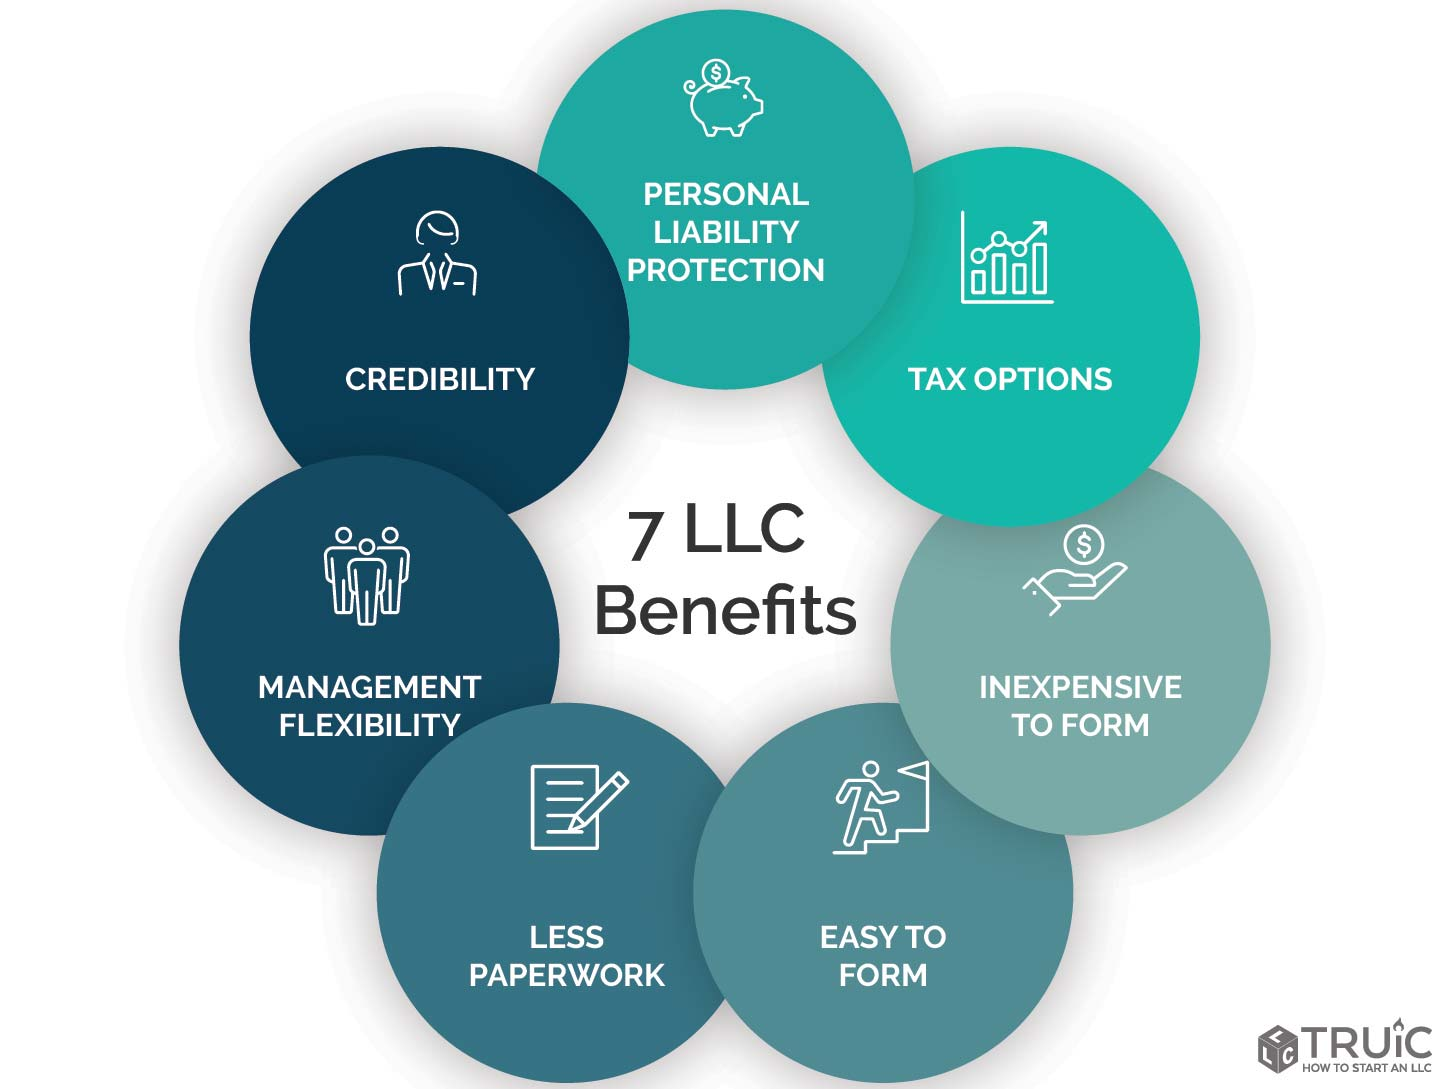 7 LLC Benefits infographic: Personal Liability Protection, Tax Options, Inexpensive to Form, Easy to Form, Less Paperwork, Management Flexibility, and Credibility.